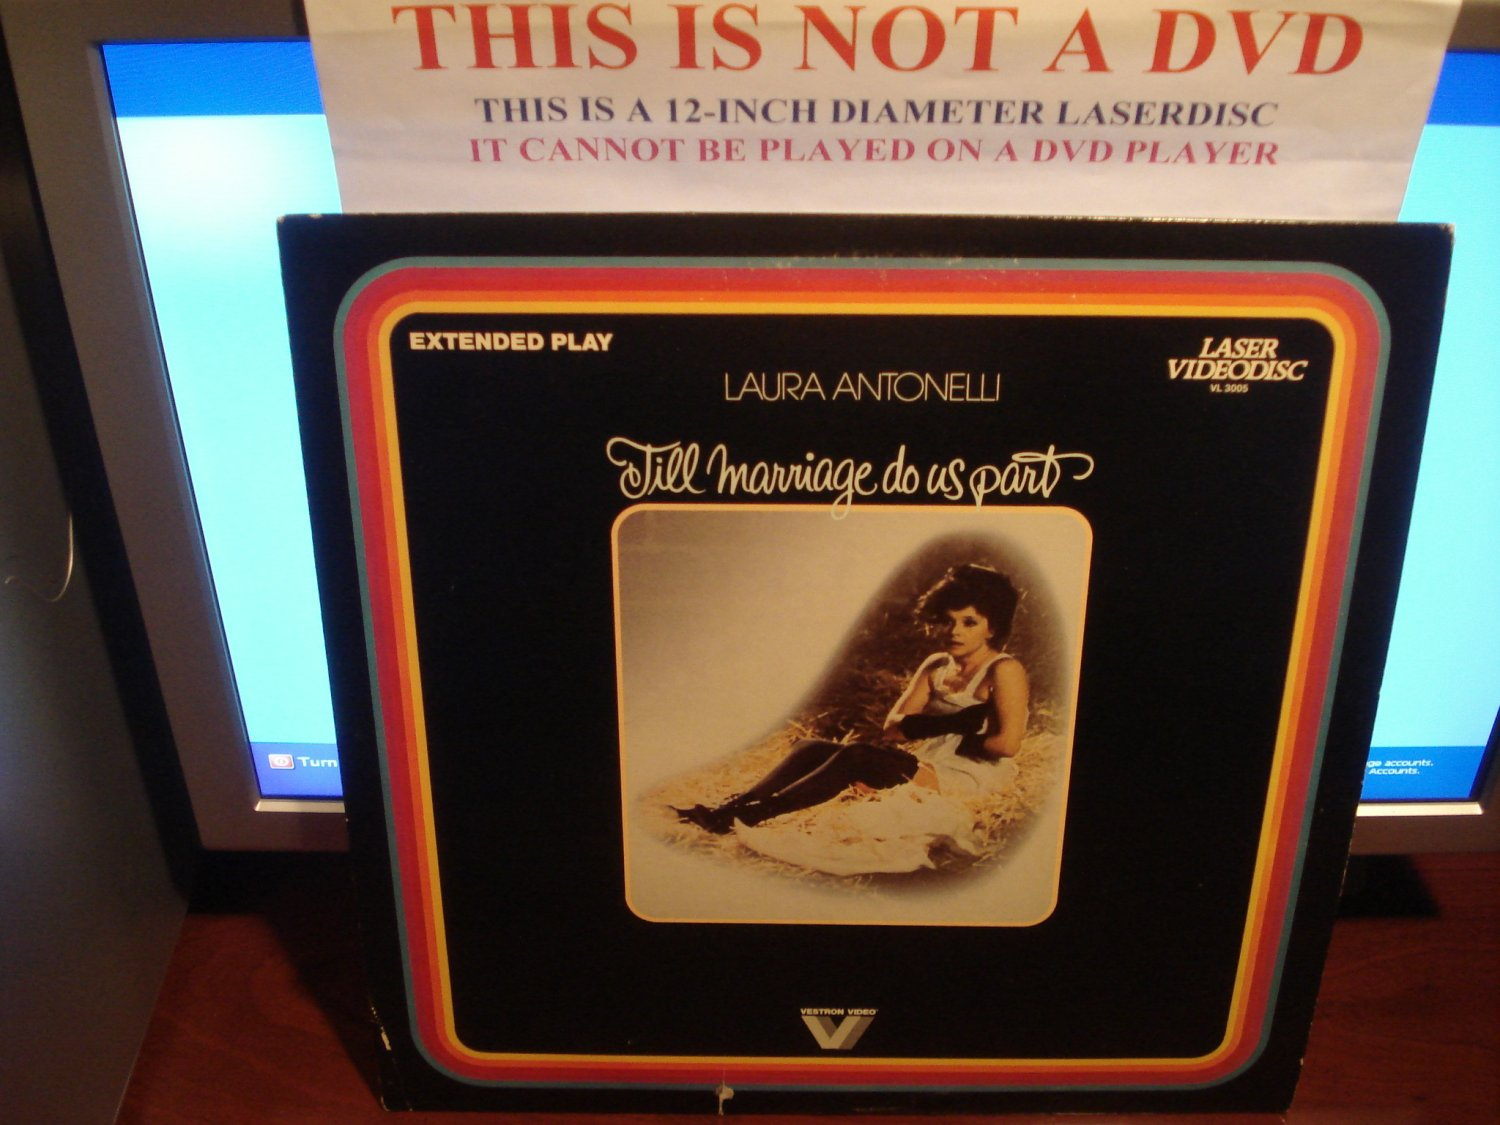 Laserdisc TILL MARRIAGE DO US PART (1979) Laura Antonelli FS Rare Classic LD